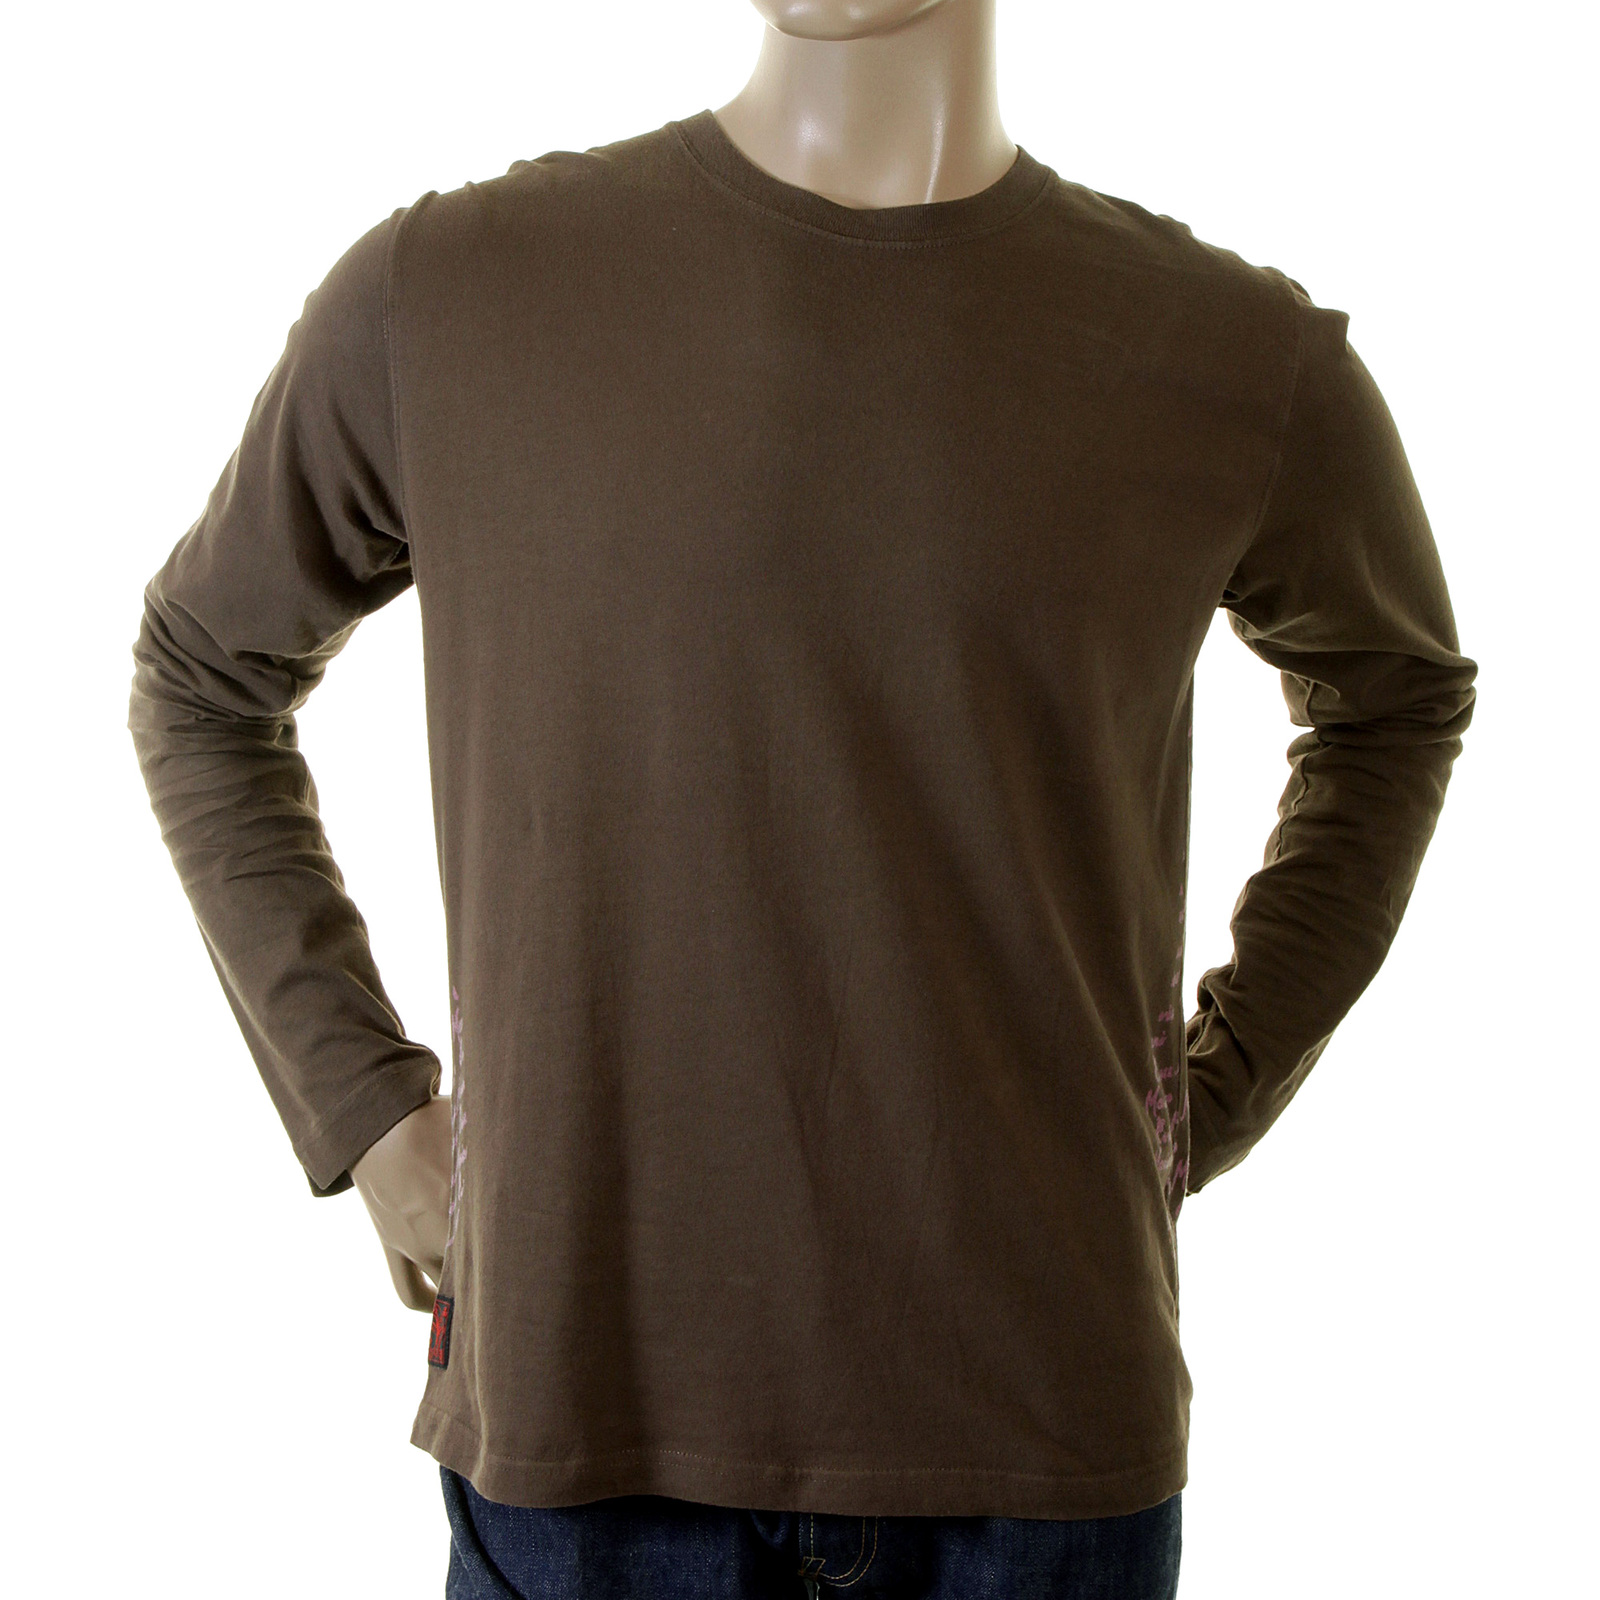 Chocolate brown mens long sleeve t shirt by evisu uk for Mens chocolate brown shirt